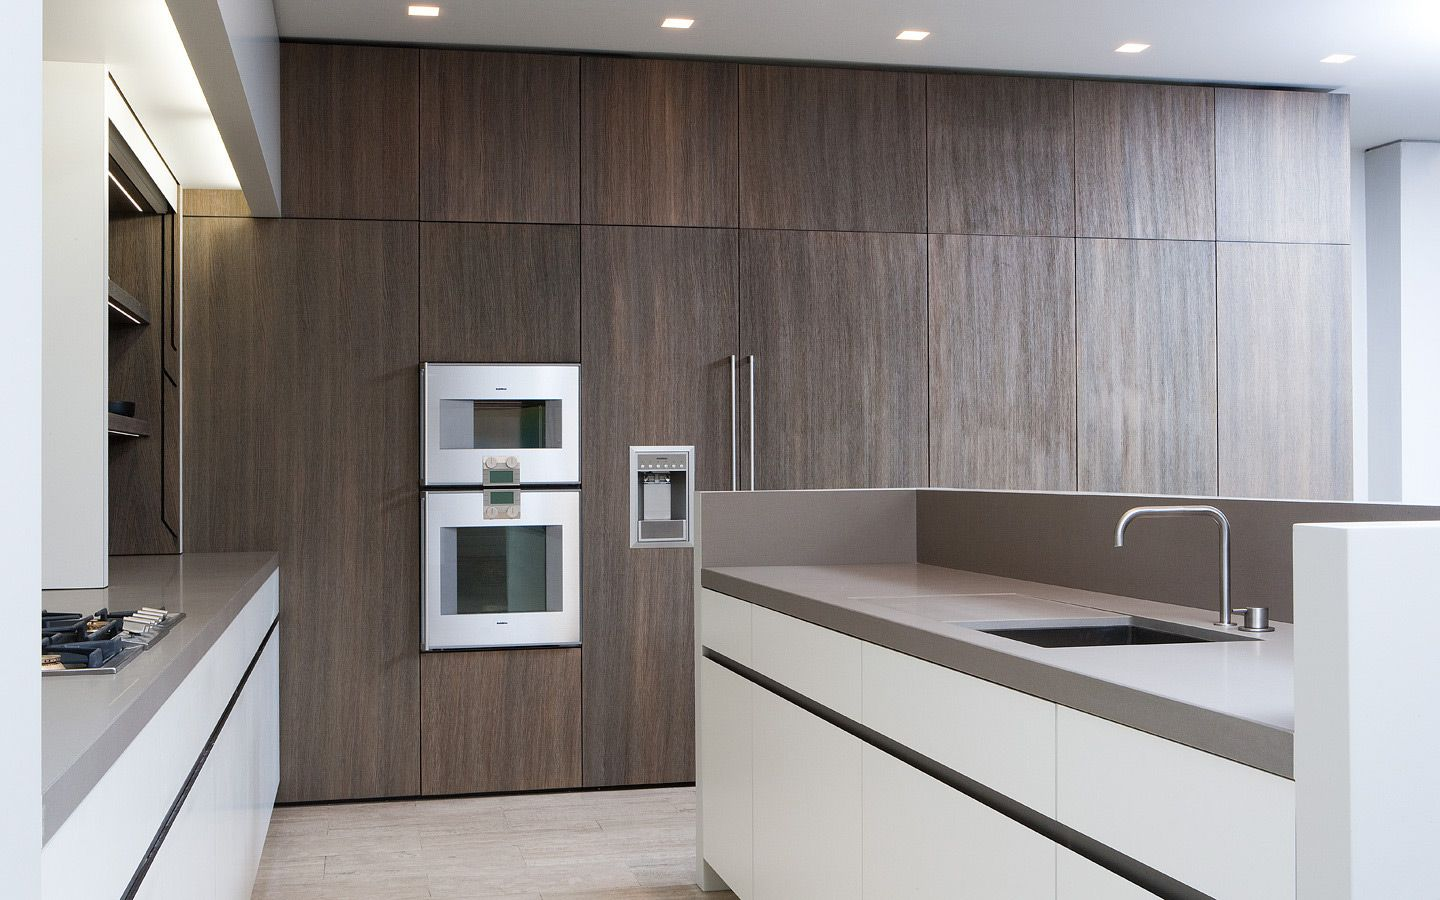 Design Keuken Showroommodel : Showroom wilfra interieurinrichting waregem design keuken